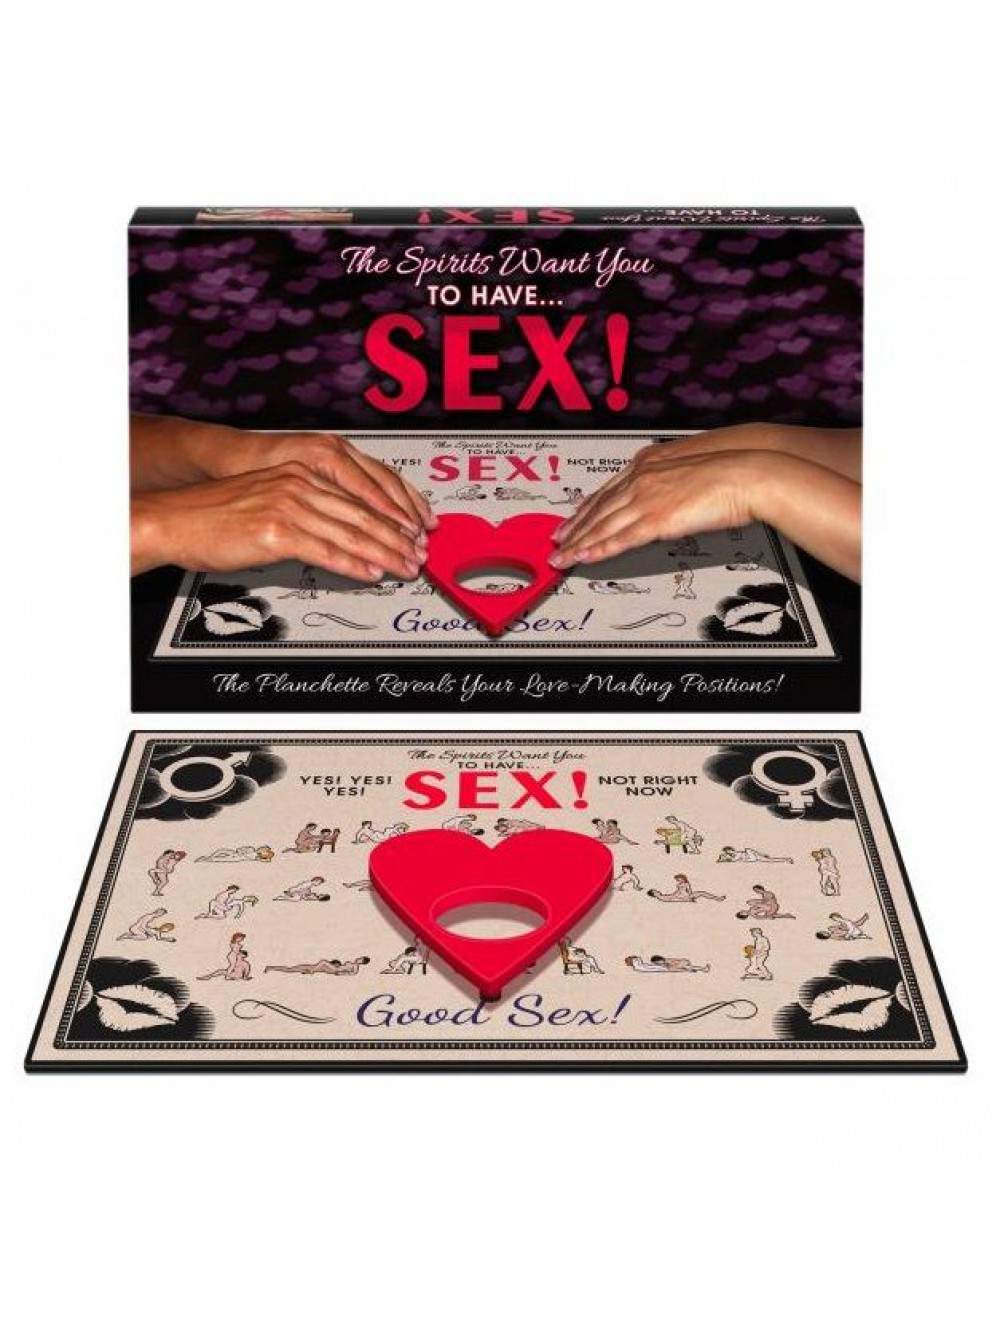 THE SPIRITS WANT YOU TO HAVE SEX 825156108475